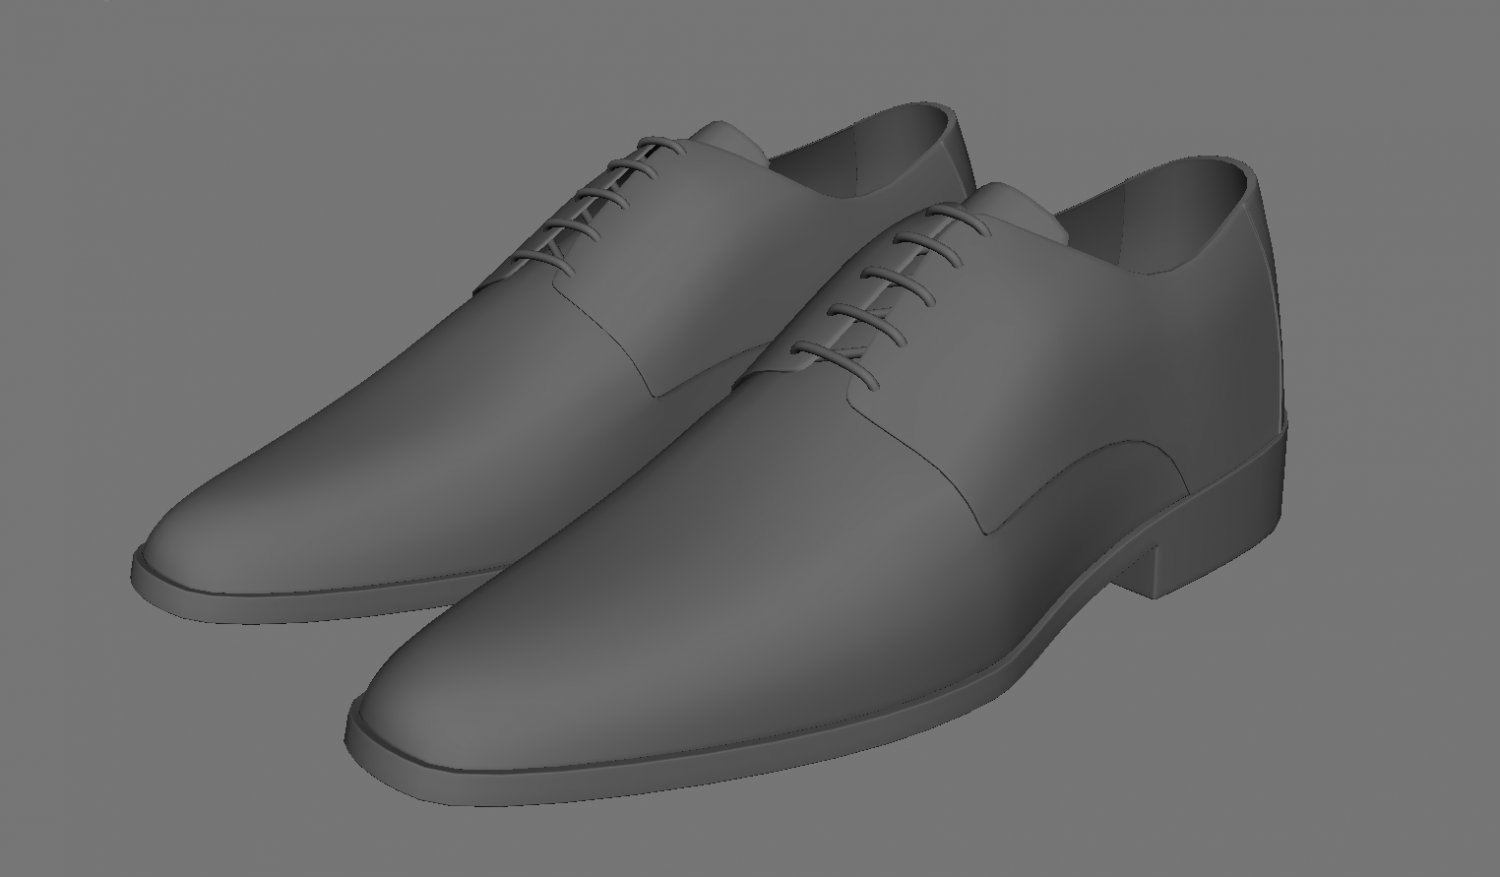 Shoe 3D Model in Clothing 3DExport